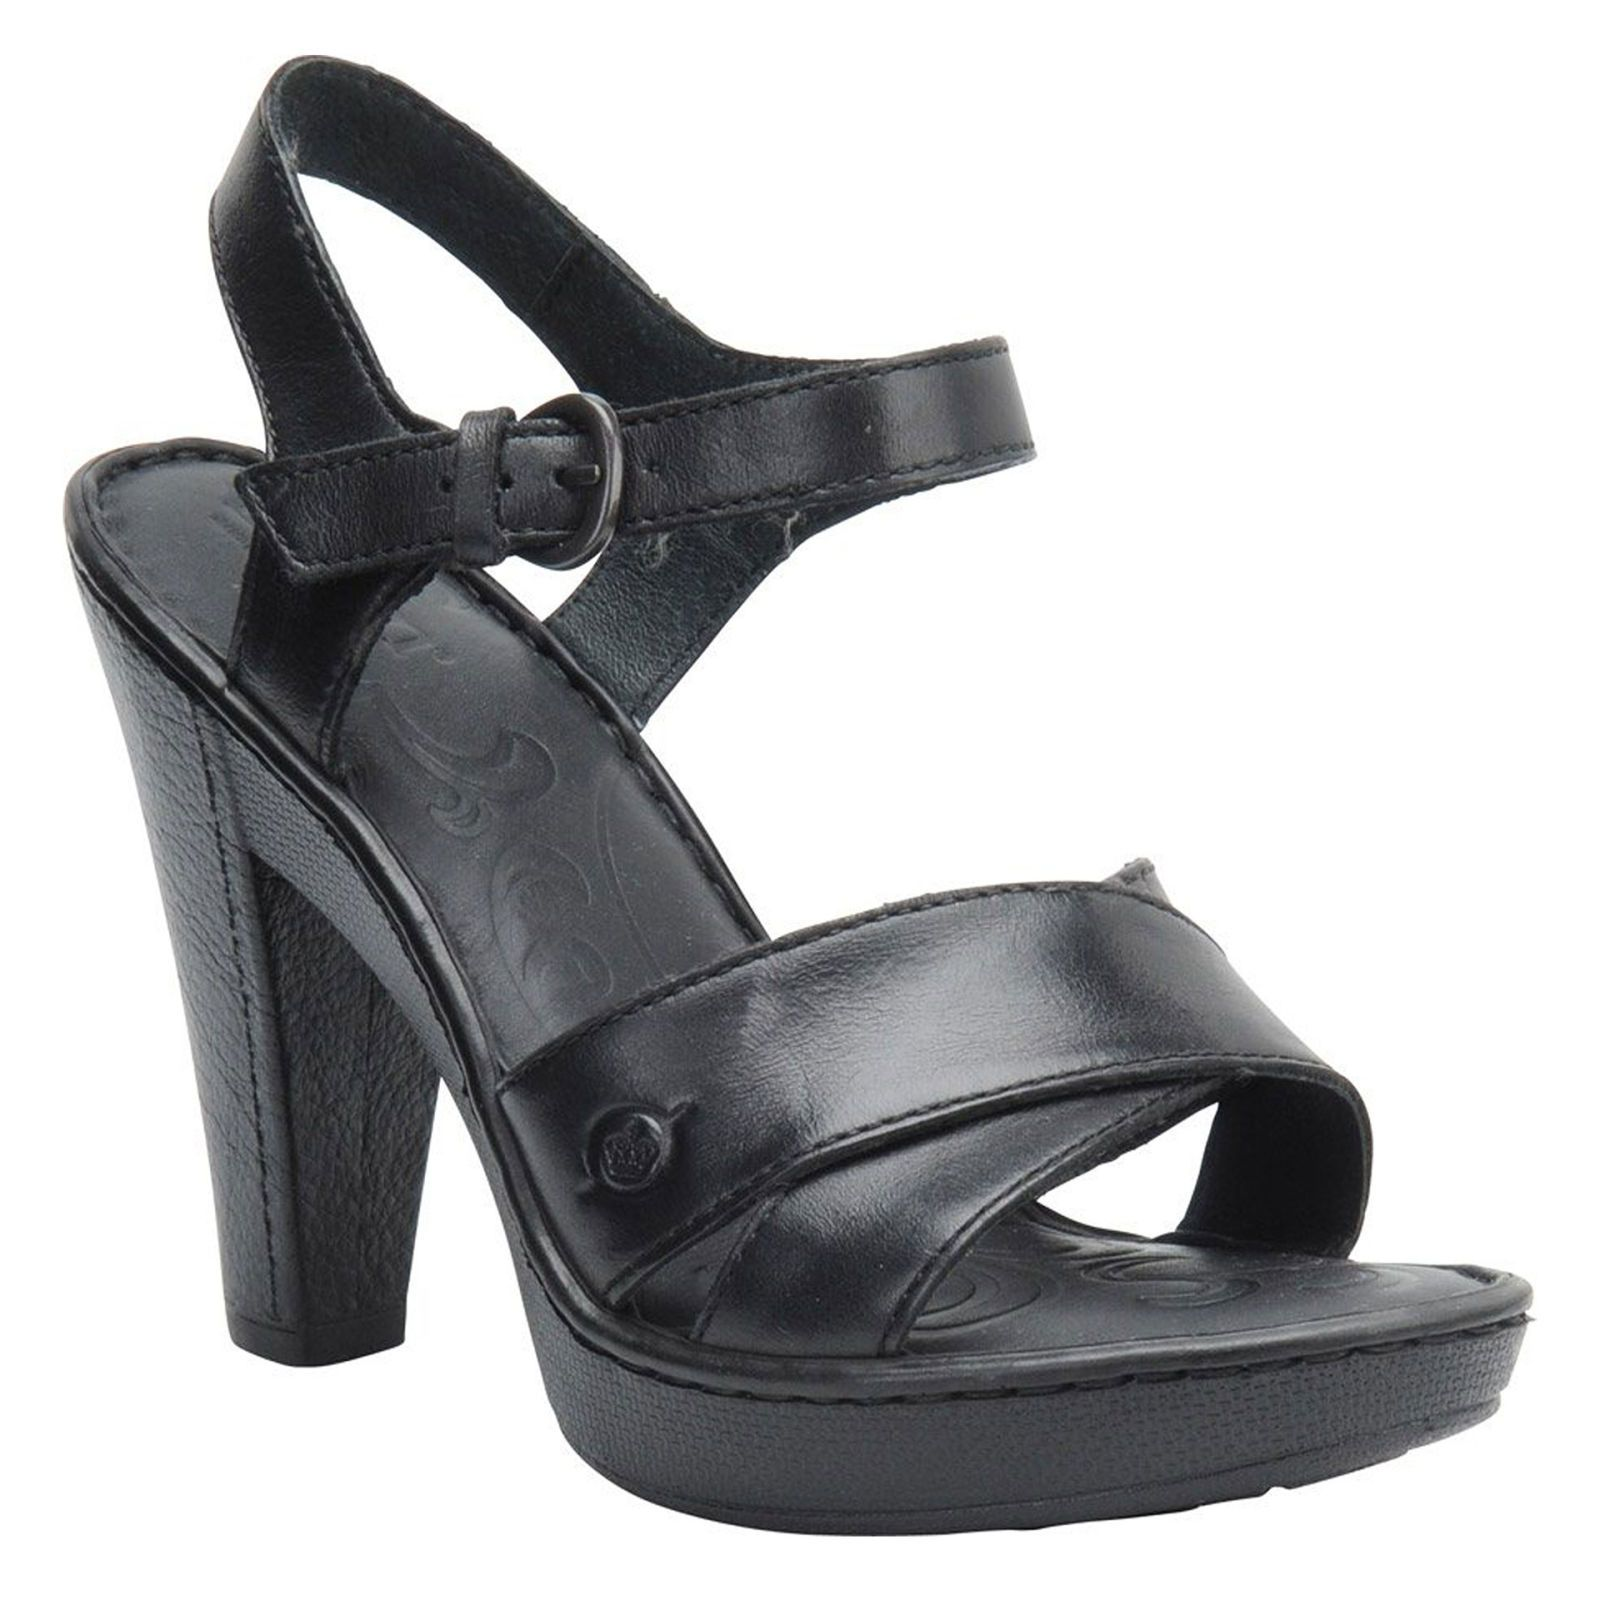 ff64f9d3626 The walking in heels for long hours thread   femalefashionadvice